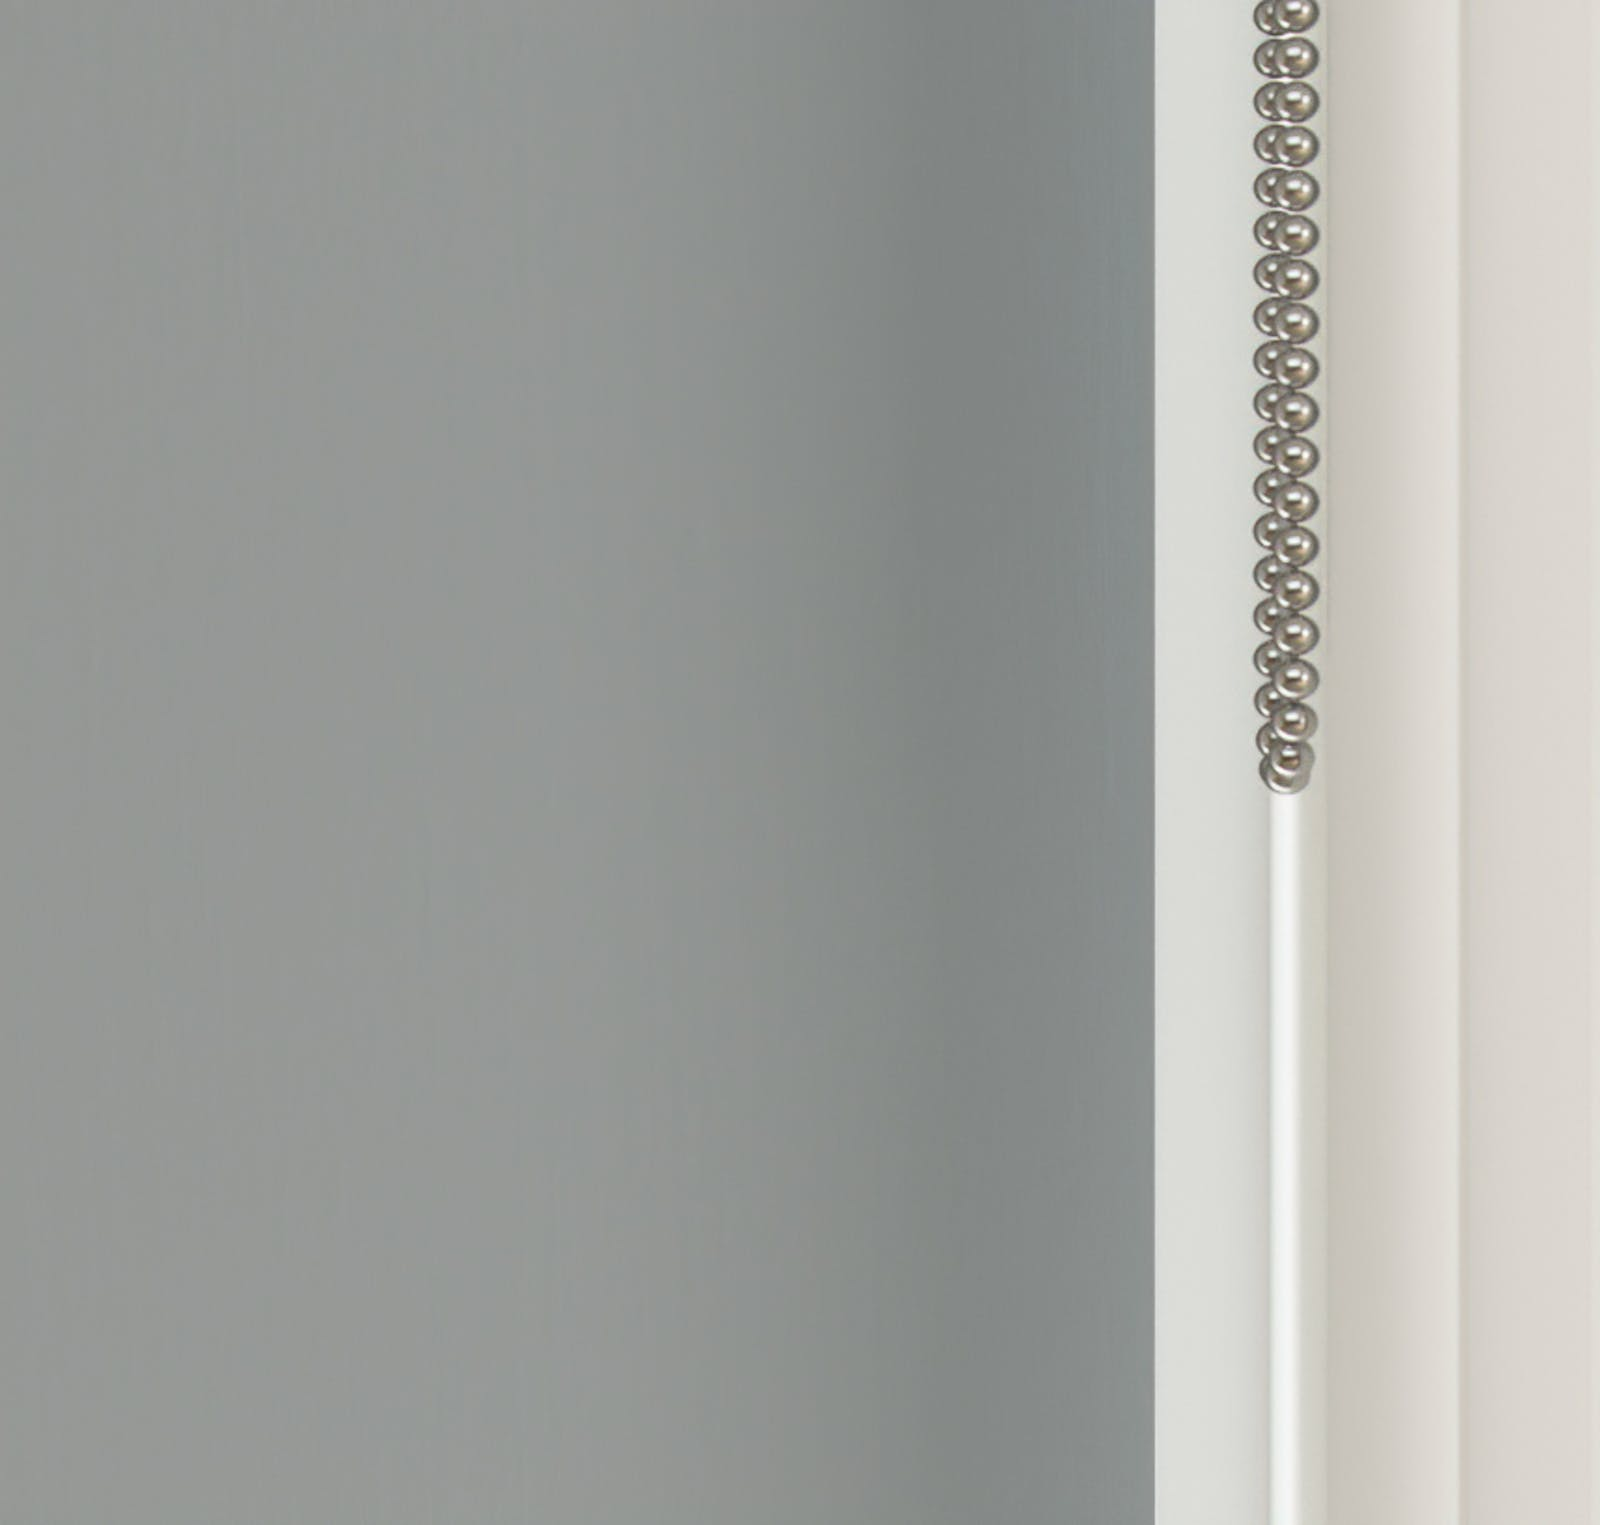 Close up view of Lick Grey 04 roller blinds